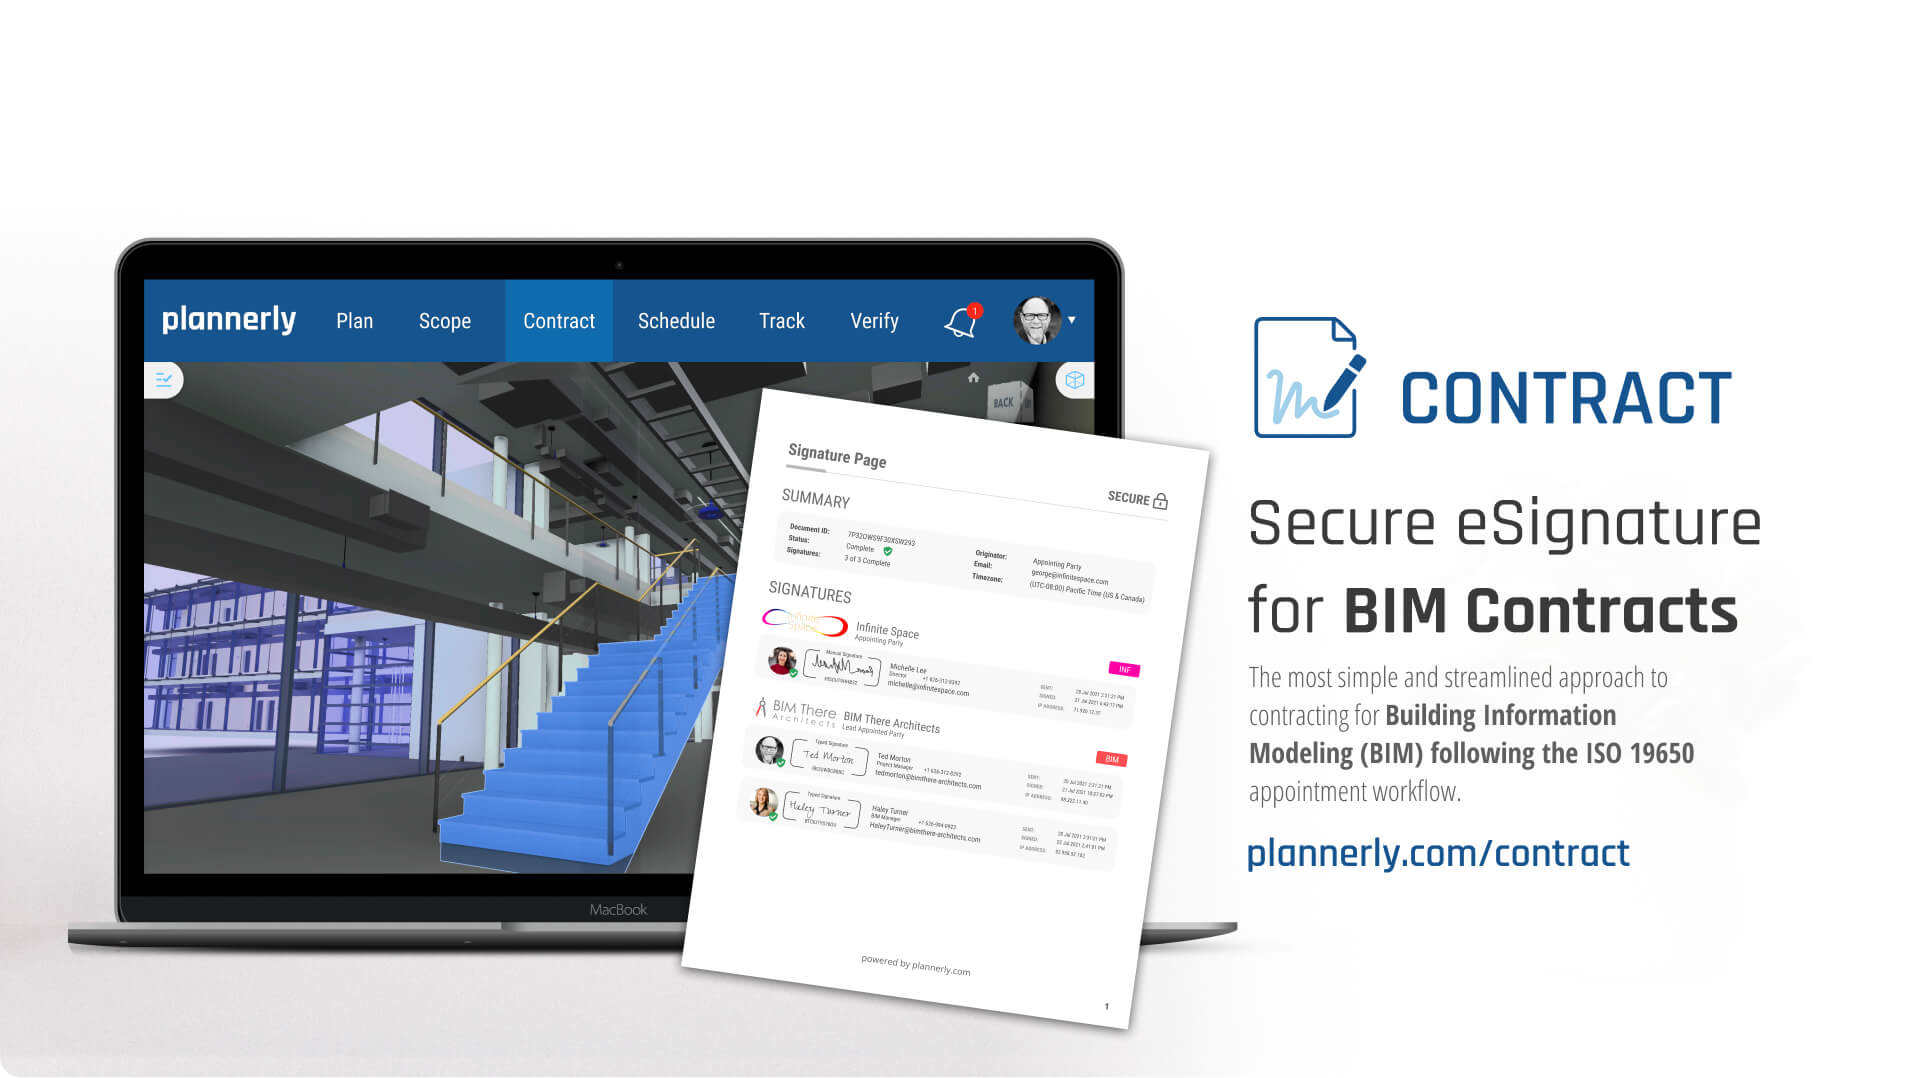 New BIM Contracting Software Released by Plannerly (The BIM Management Platform)